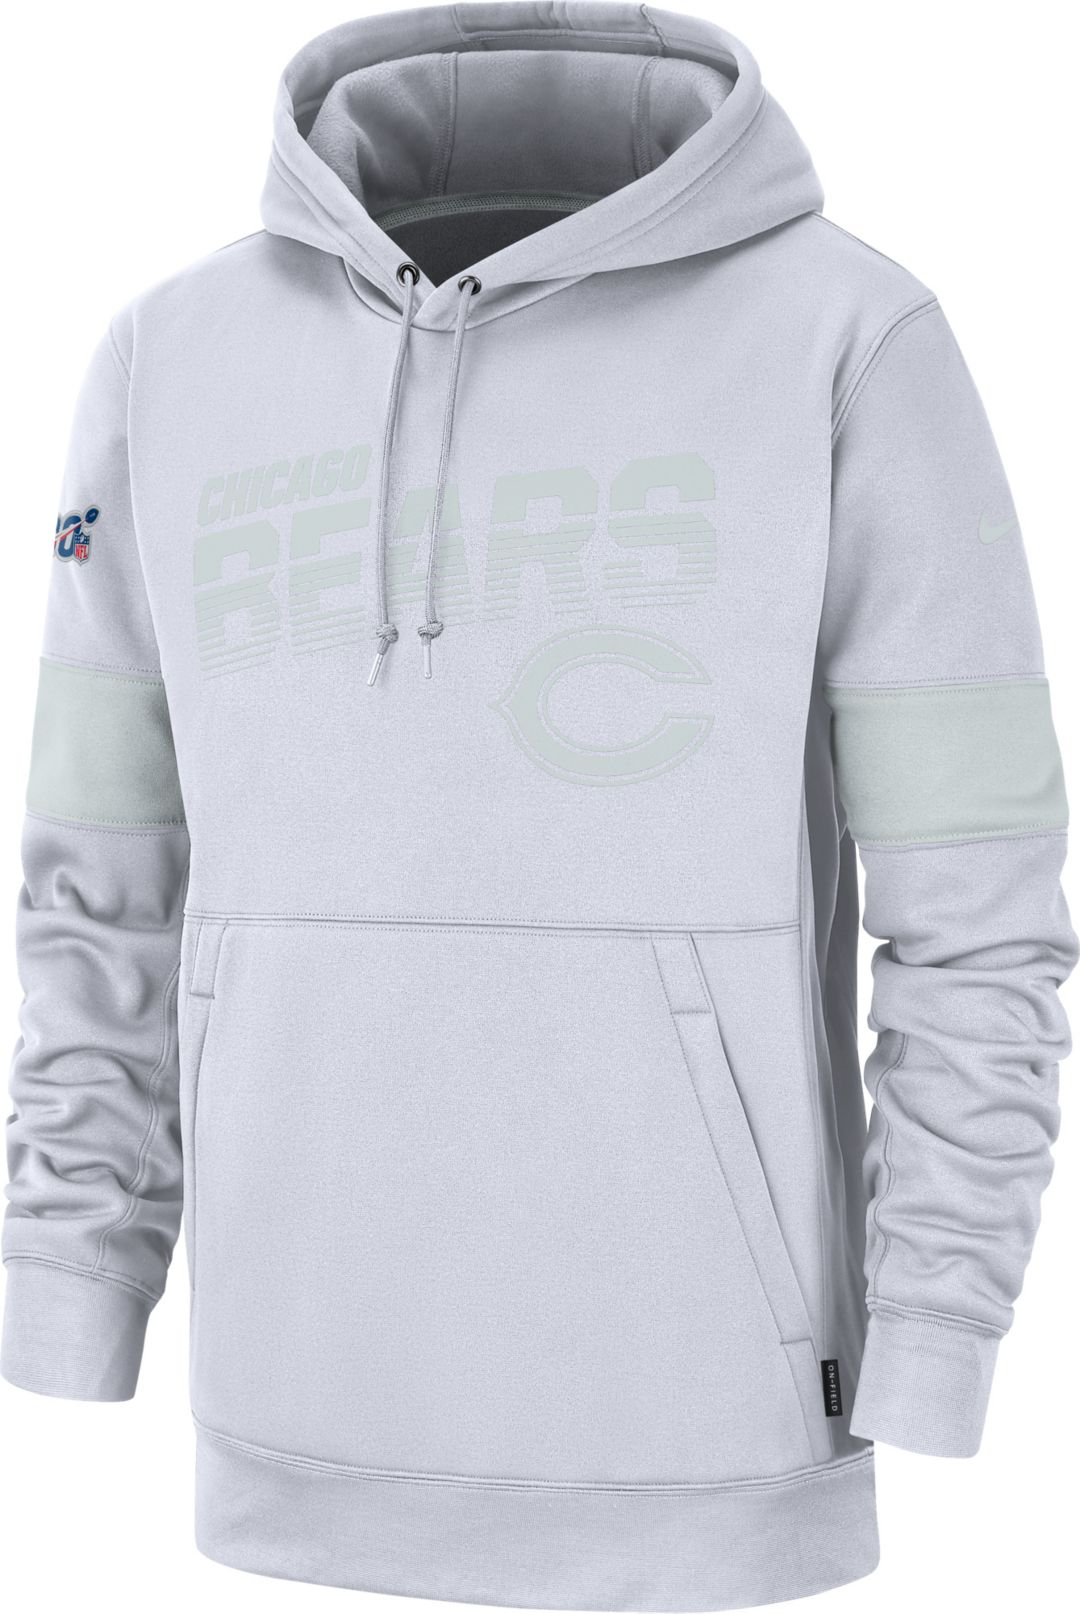 competitive price cb4f2 98edb Nike Men's Chicago Bears 100th Sideline Therma-FIT Pullover White Hoodie